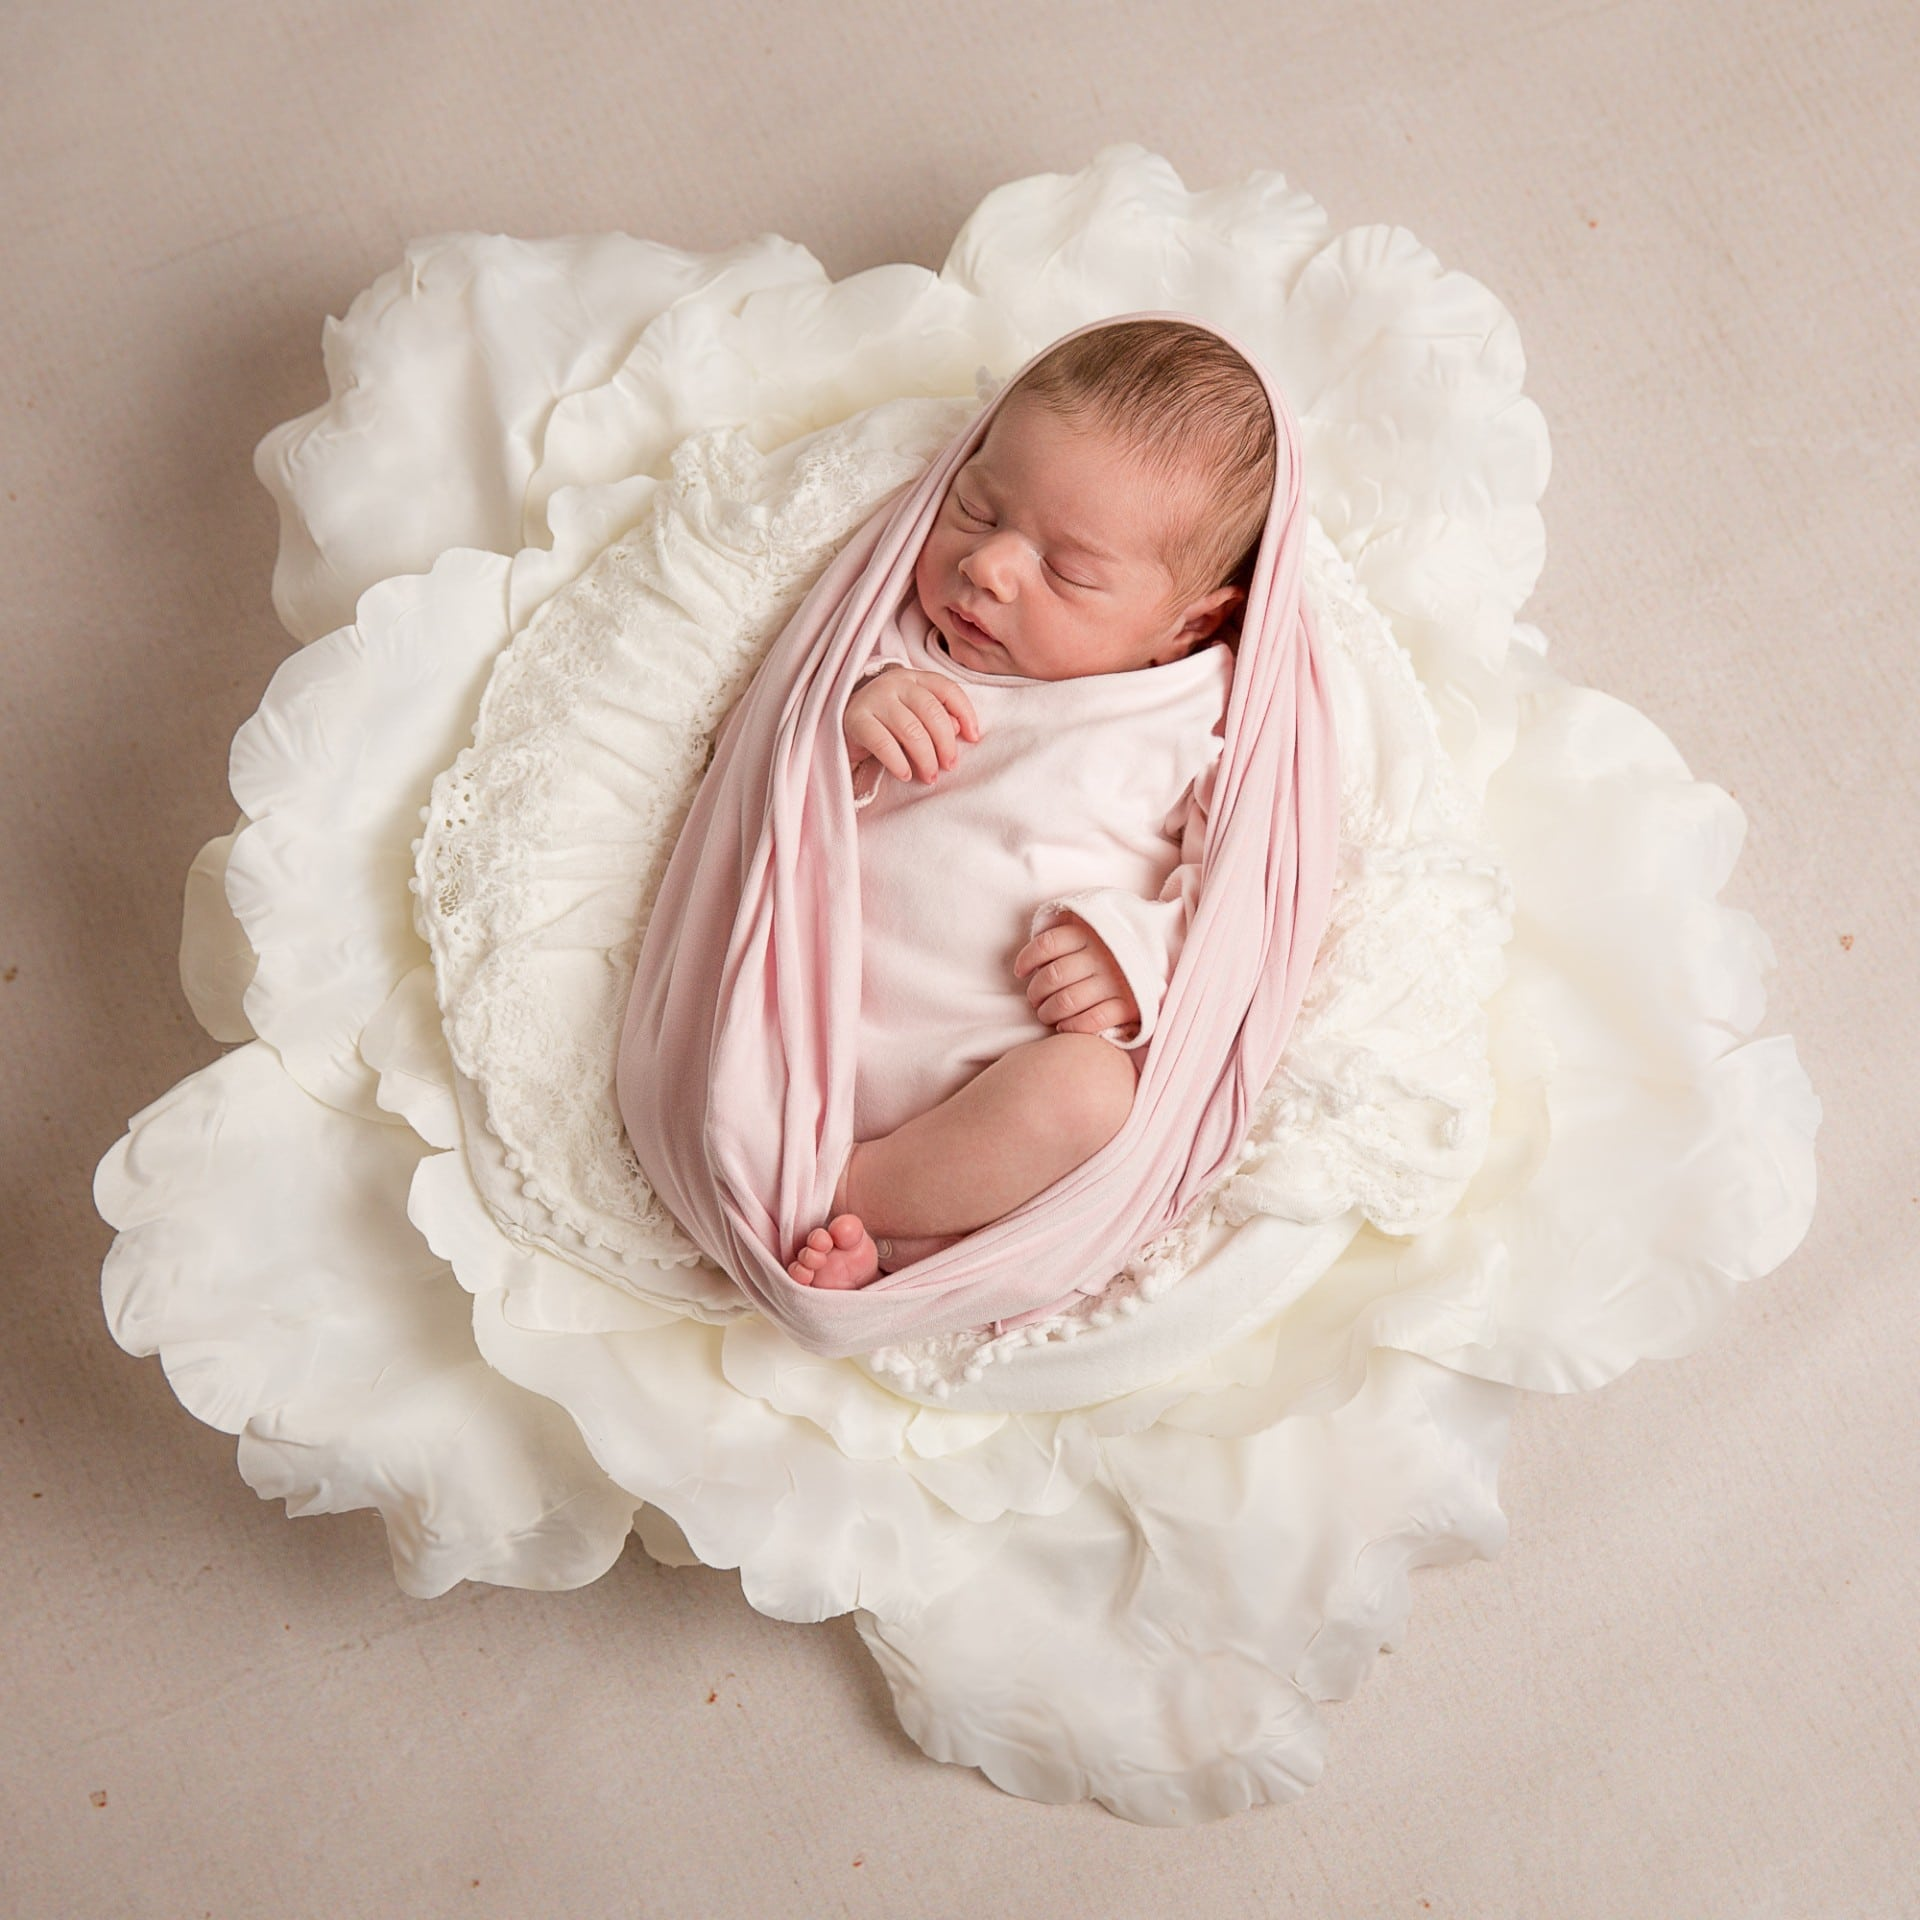 400-little-dots---by-Lea-Weber-Photography-Babyfotos-V2OhiNeu 2